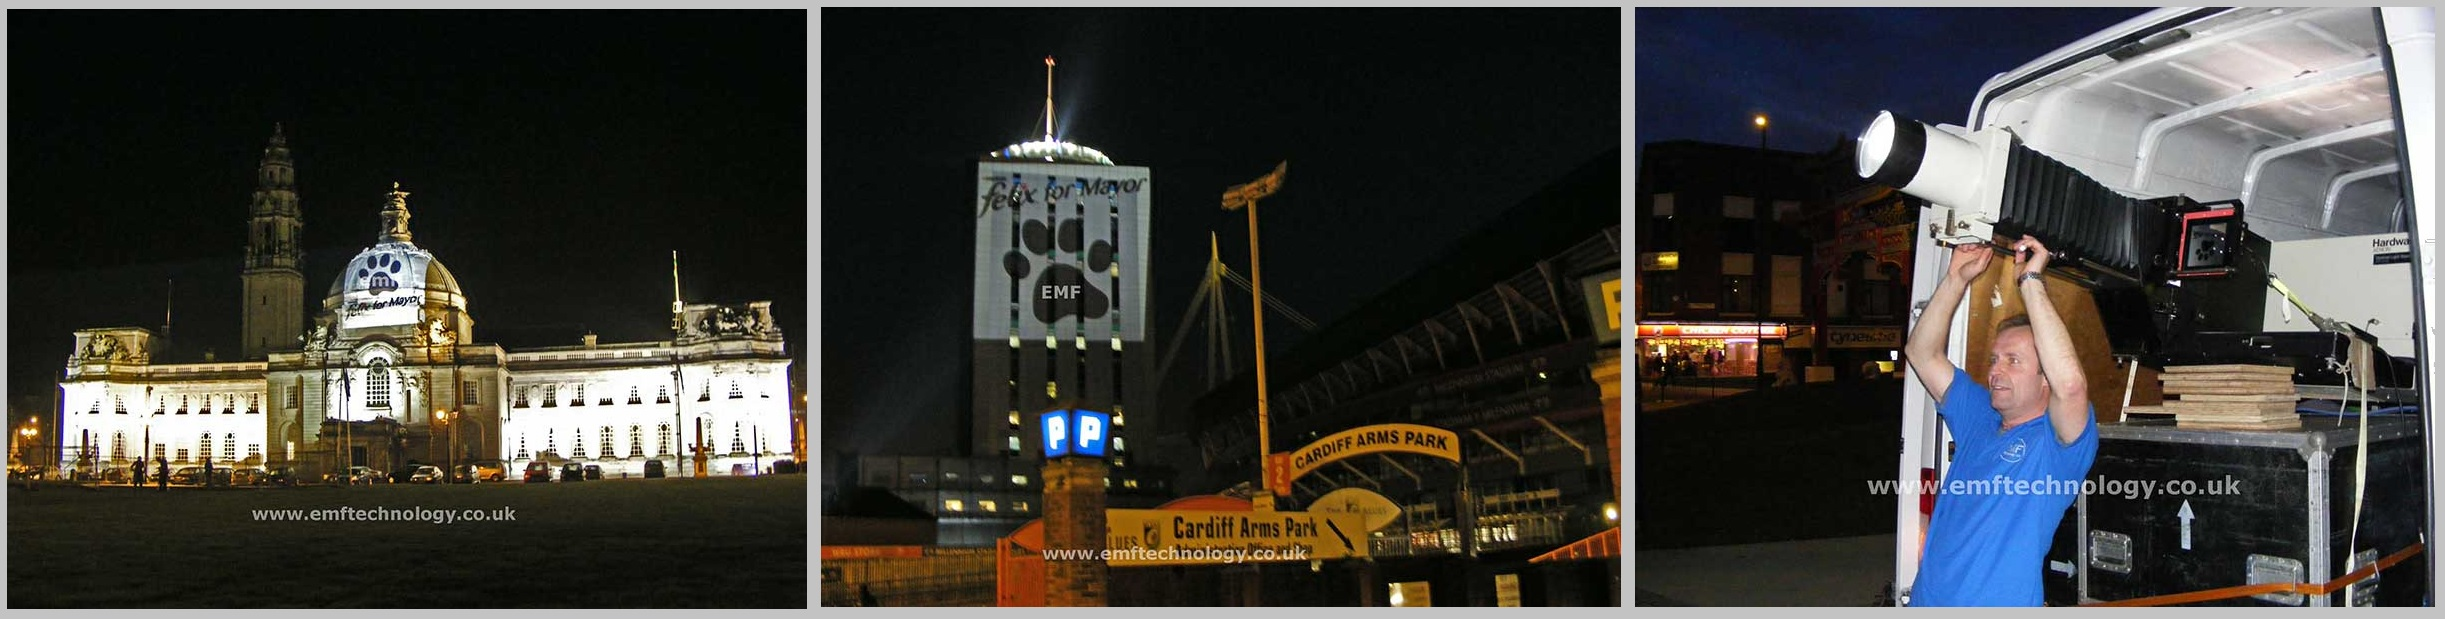 Outdoor Building Projection Advertising Campaign Cardiff